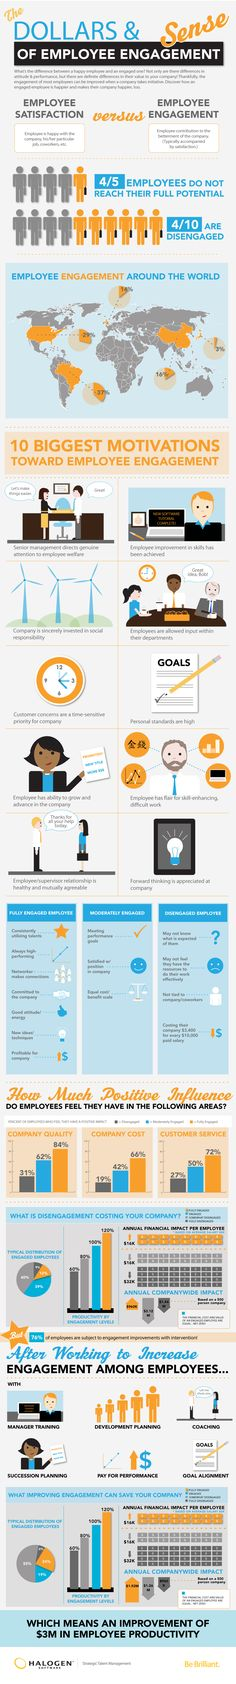 The Dollars and Sense of Employee Engagement [#infographic]